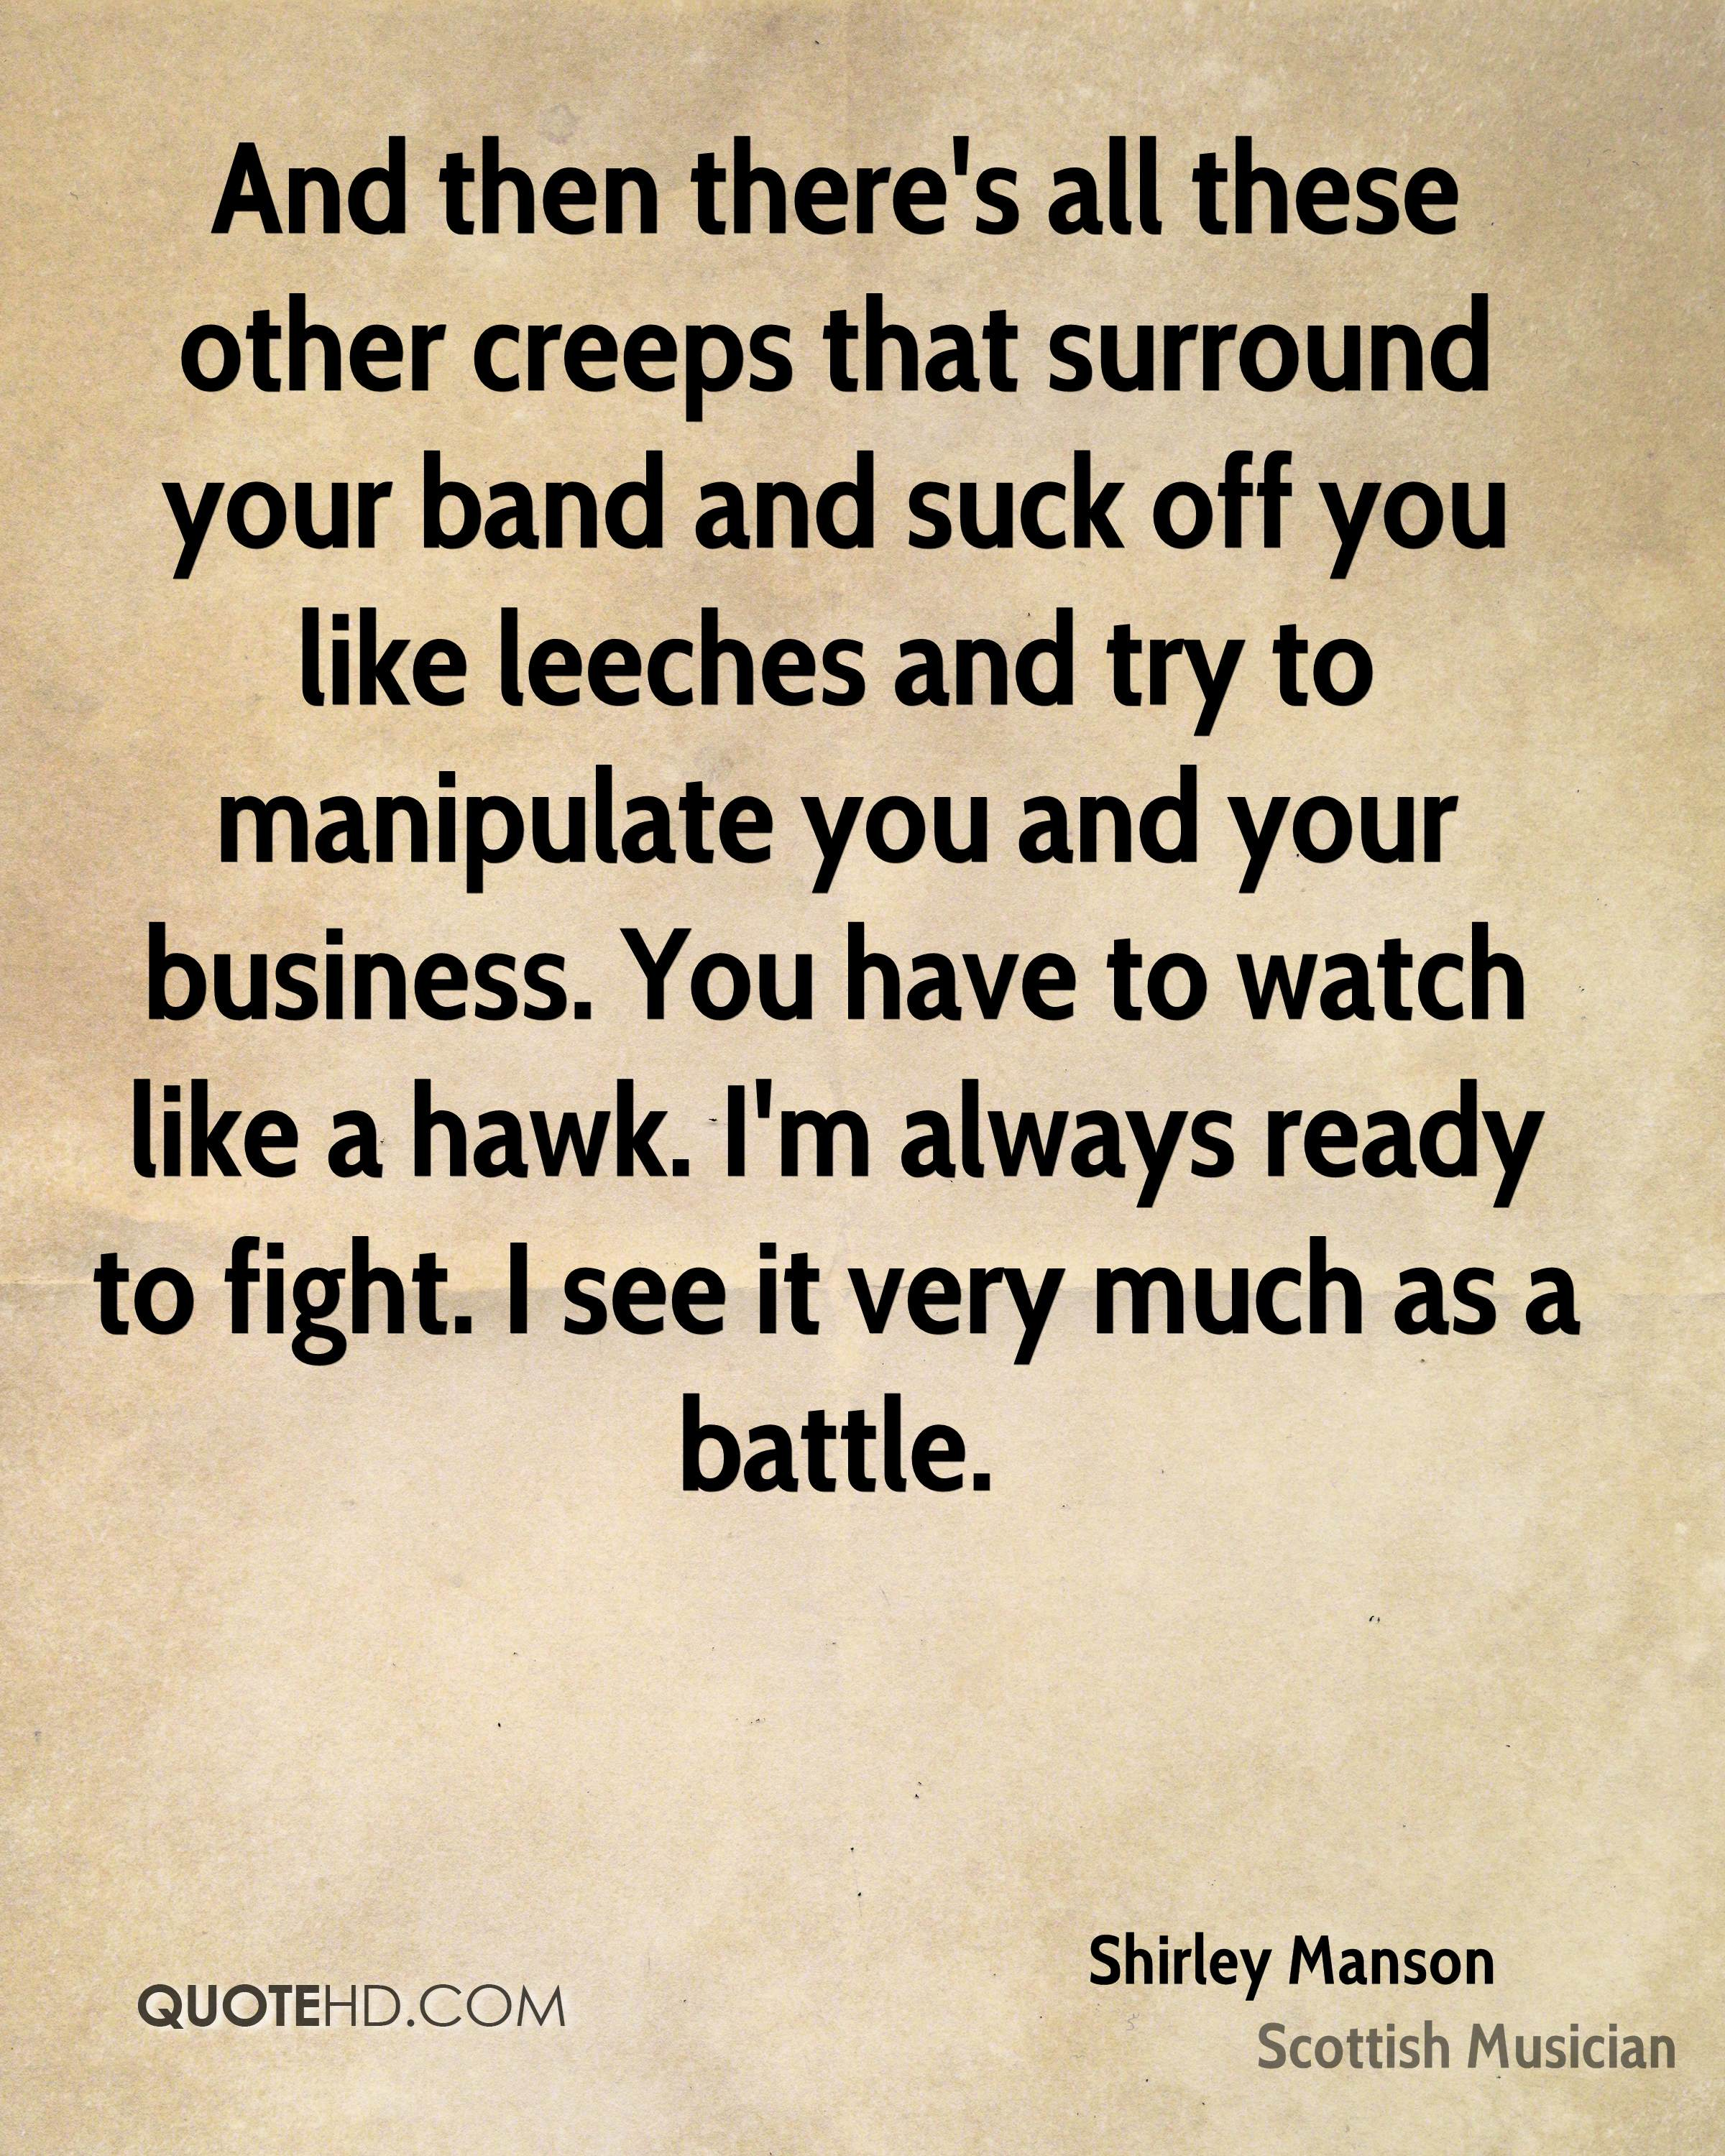 And then there's all these other creeps that surround your band and suck off you like leeches and try to manipulate you and your business. You have to watch like a hawk. I'm always ready to fight. I see it very much as a battle.